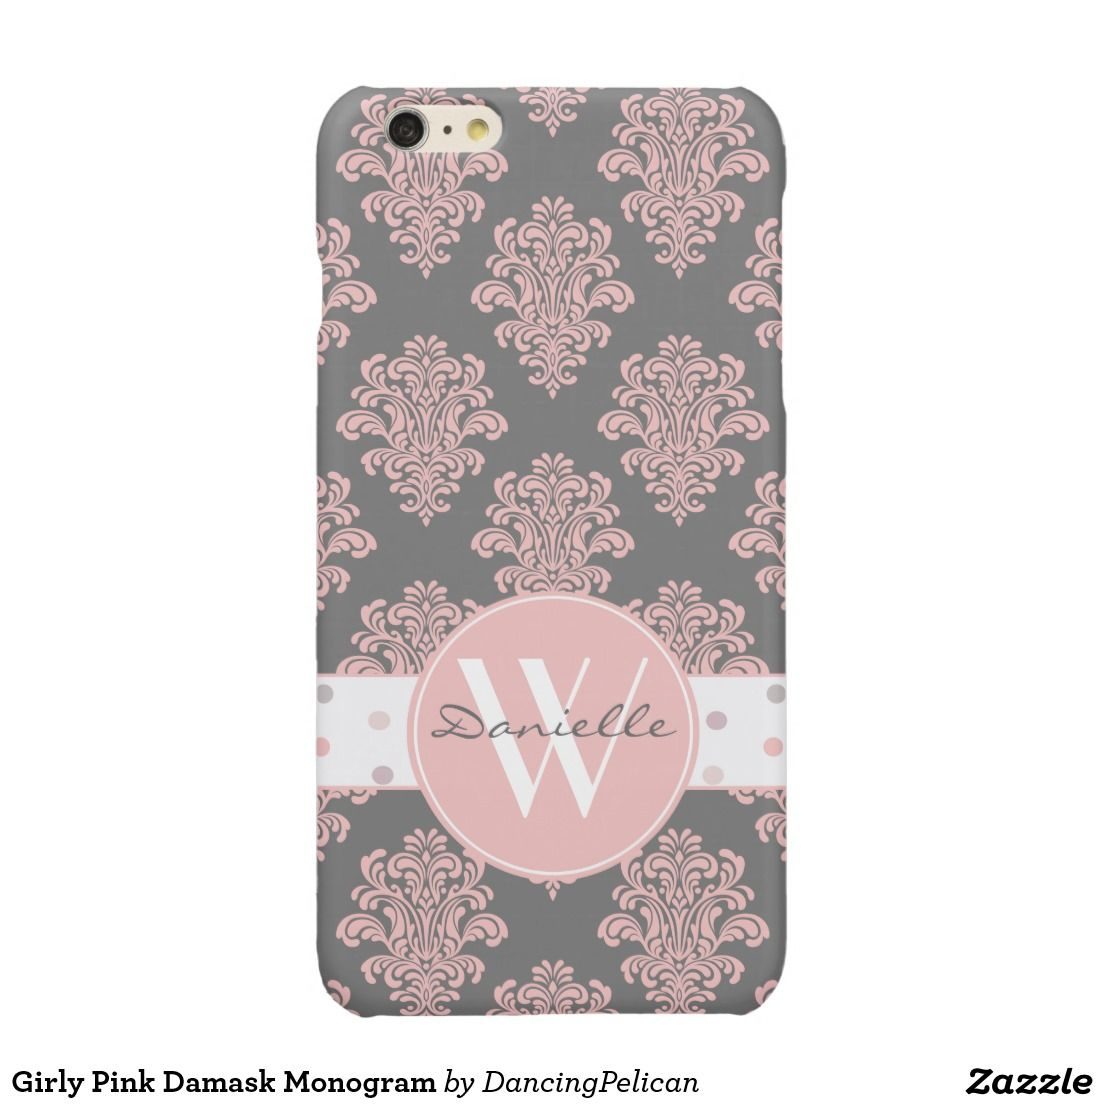 Girly Pink Damask Monogram Glossy iPhone 6 Plus Case - Pink and feminine, this damask design is shown here against a stylish gray background with a matching polka dot band and round monogram frame. Sold at DancingPelican on Zazzle.